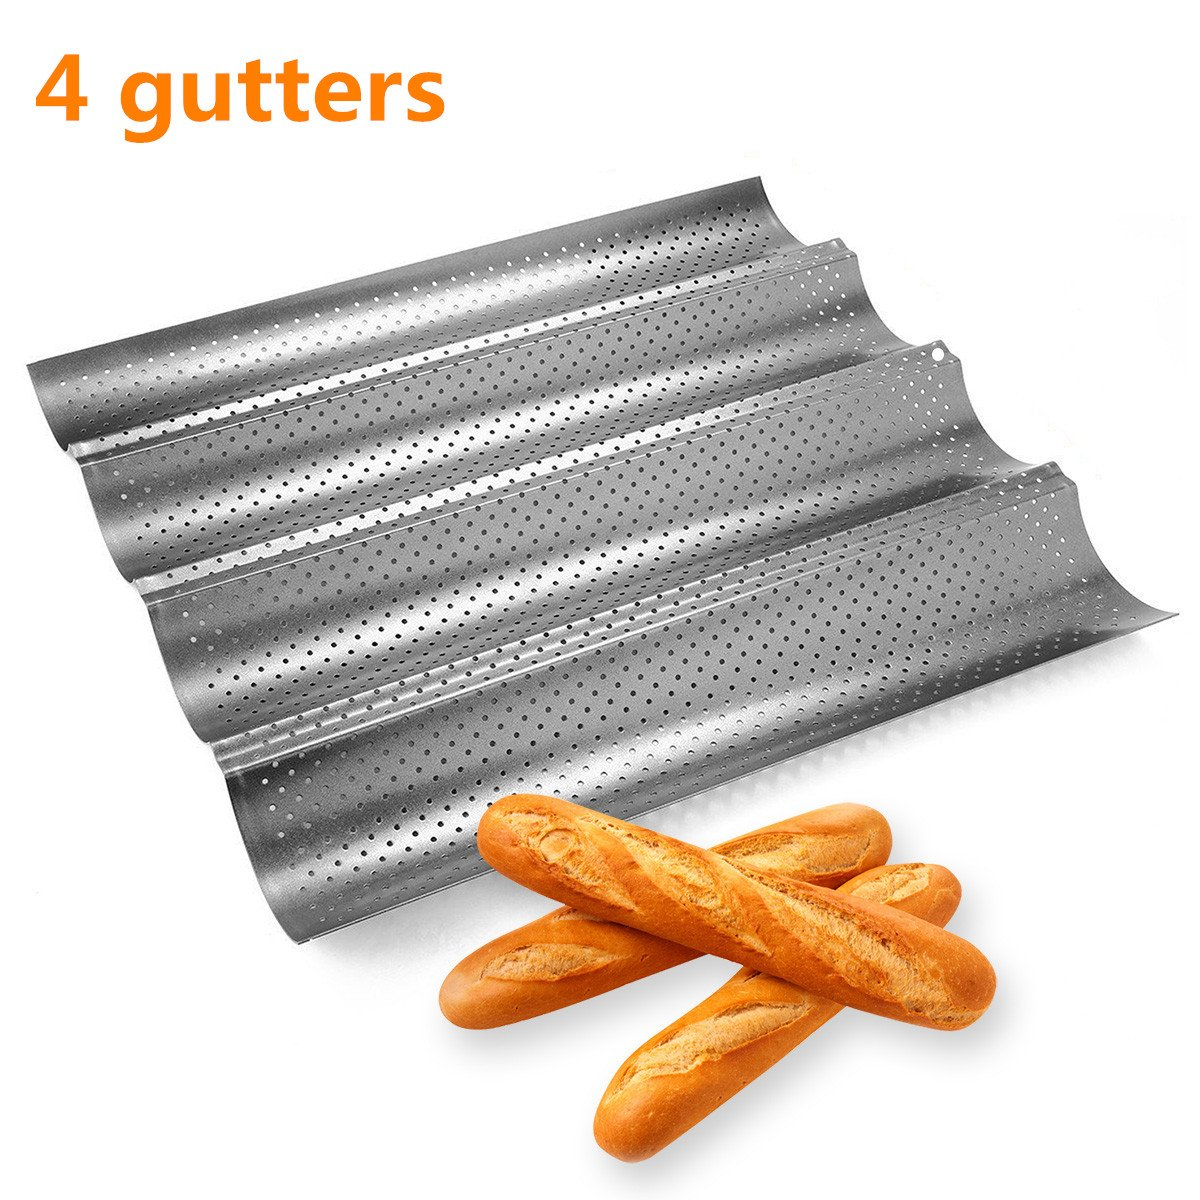 Ohomr No-stick French Bread Pan for Baking Baguettes Metallic Perforated Wave Loaf Bake Mold 4 Gutters Baguette Pan by